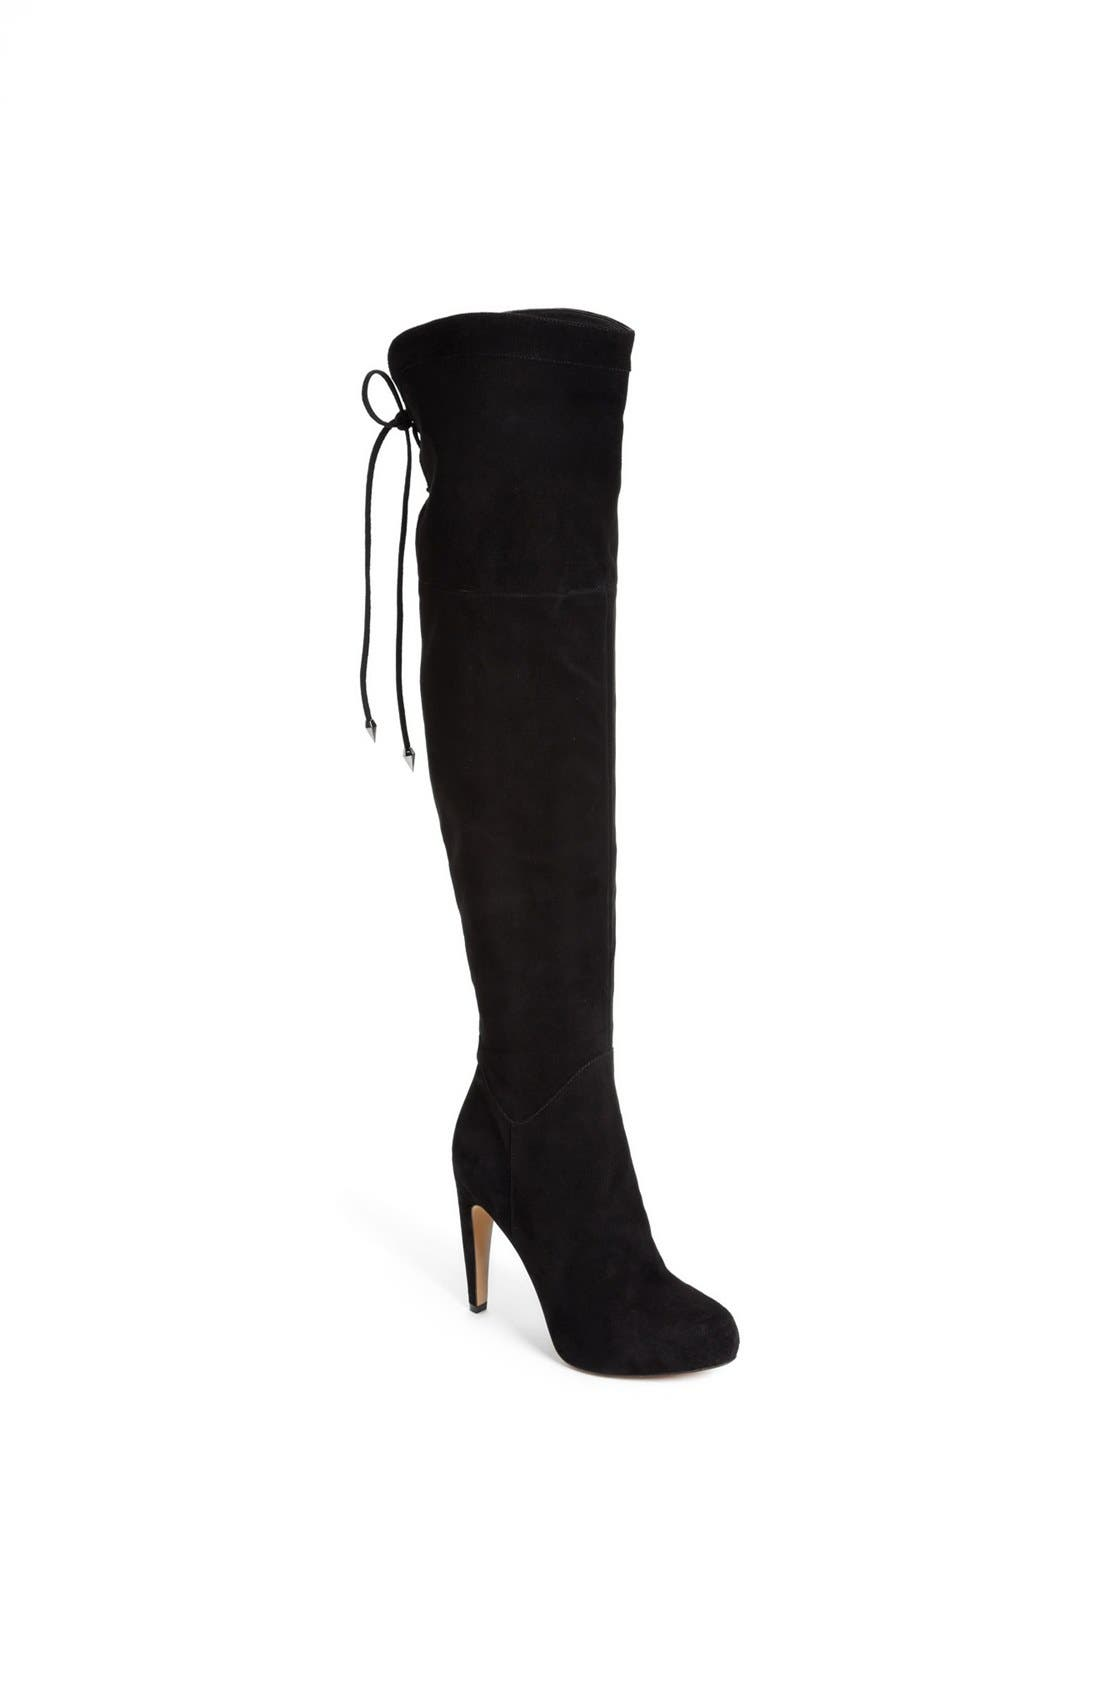 Main Image - Sam Edelman 'Kayla' Over the Knee Boot (Women) (Online Only)